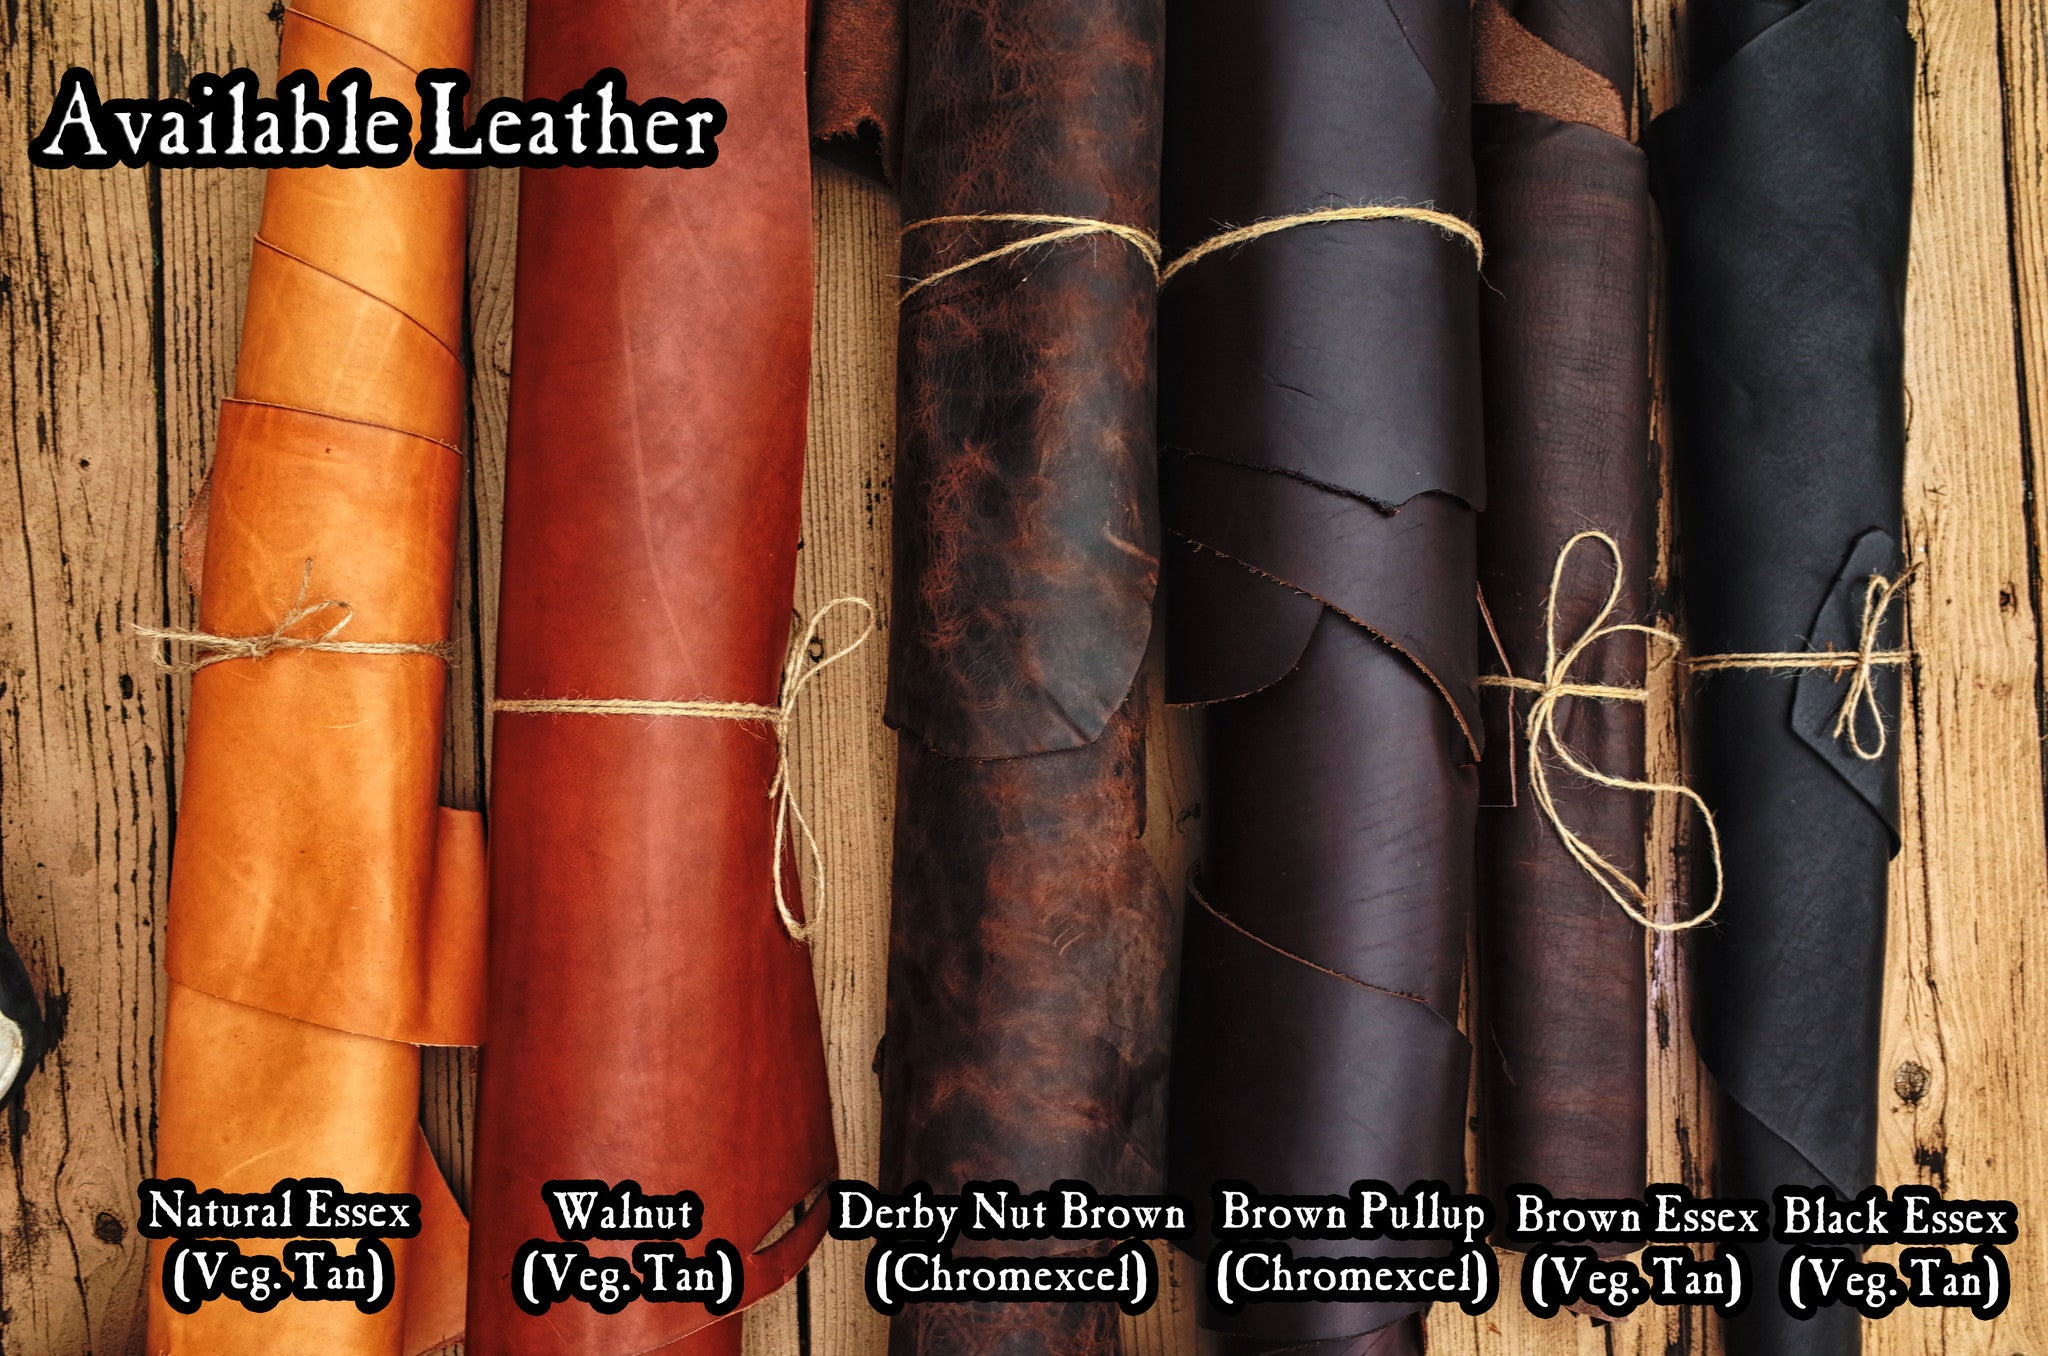 What Leather Colors are Available?